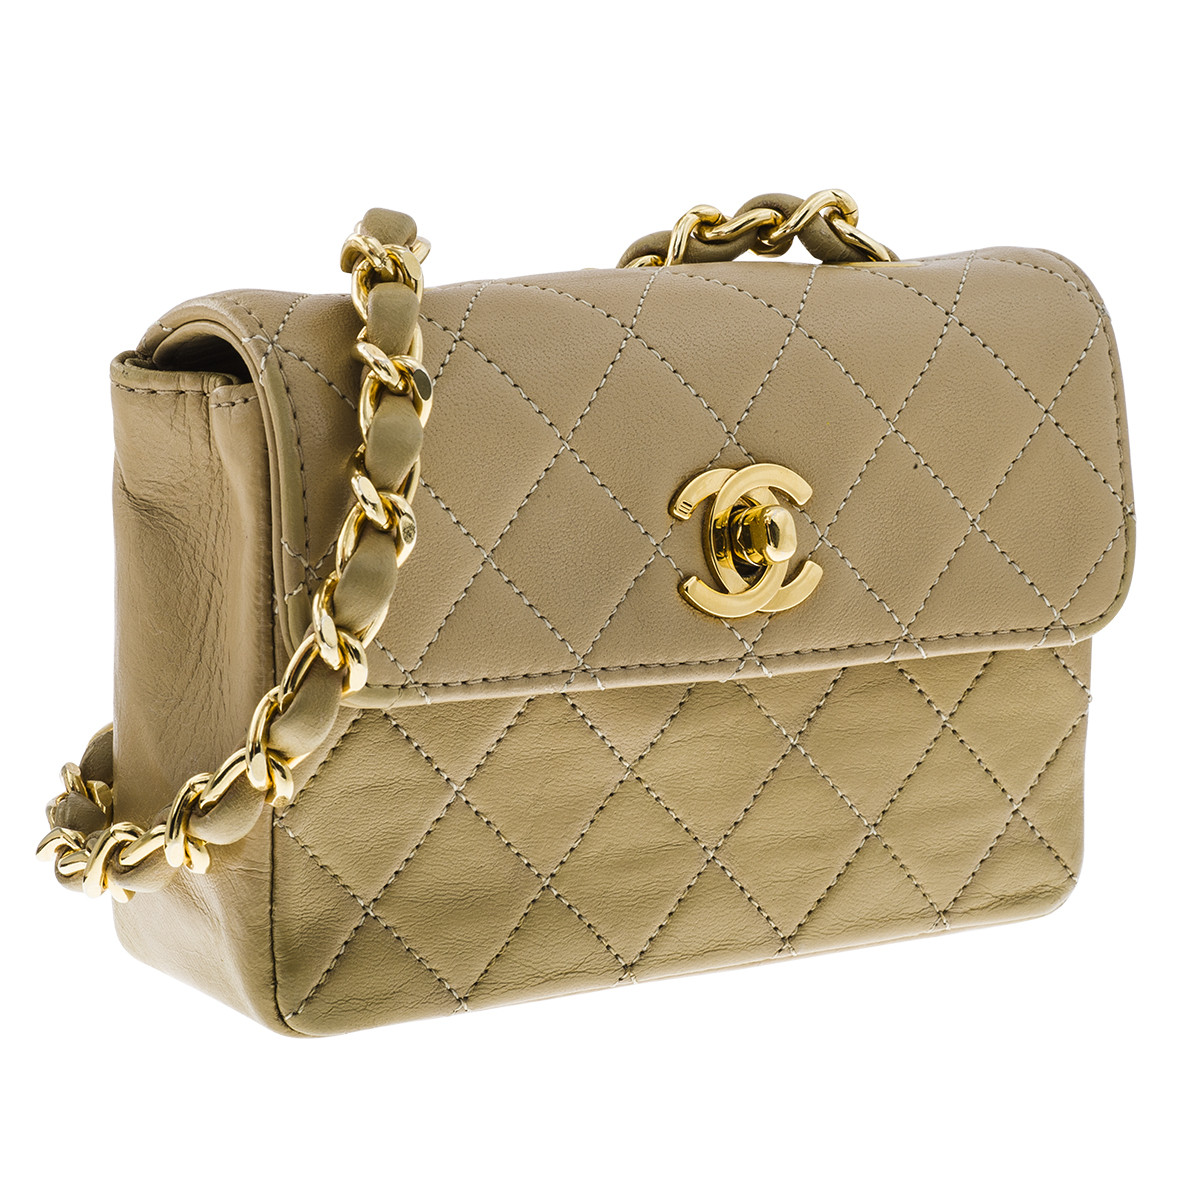 Vintage Chanel Beige Leather Mini Quilted Handbag